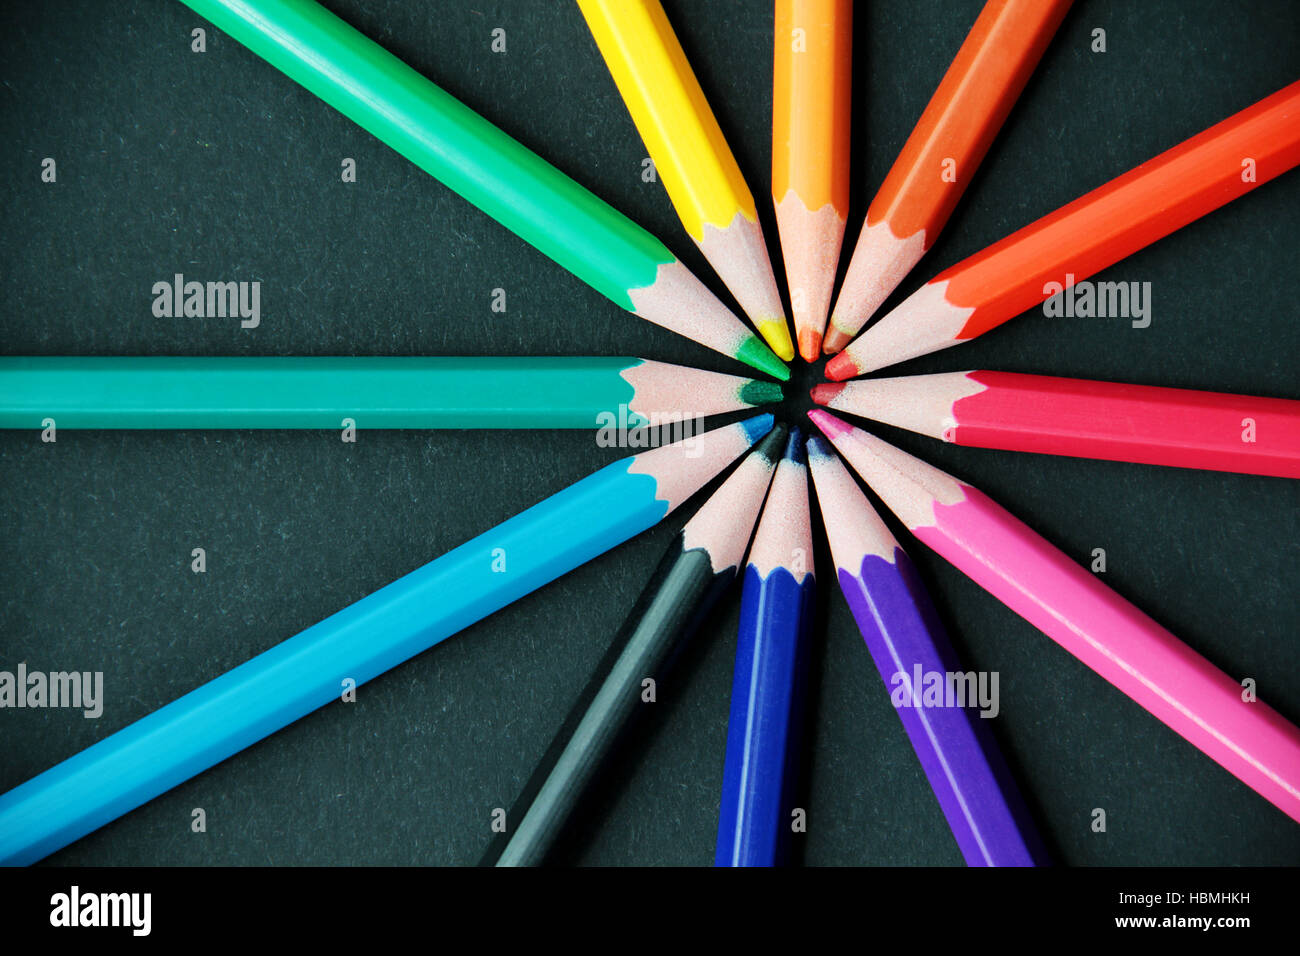 Pencils of different colors close up - Stock Image